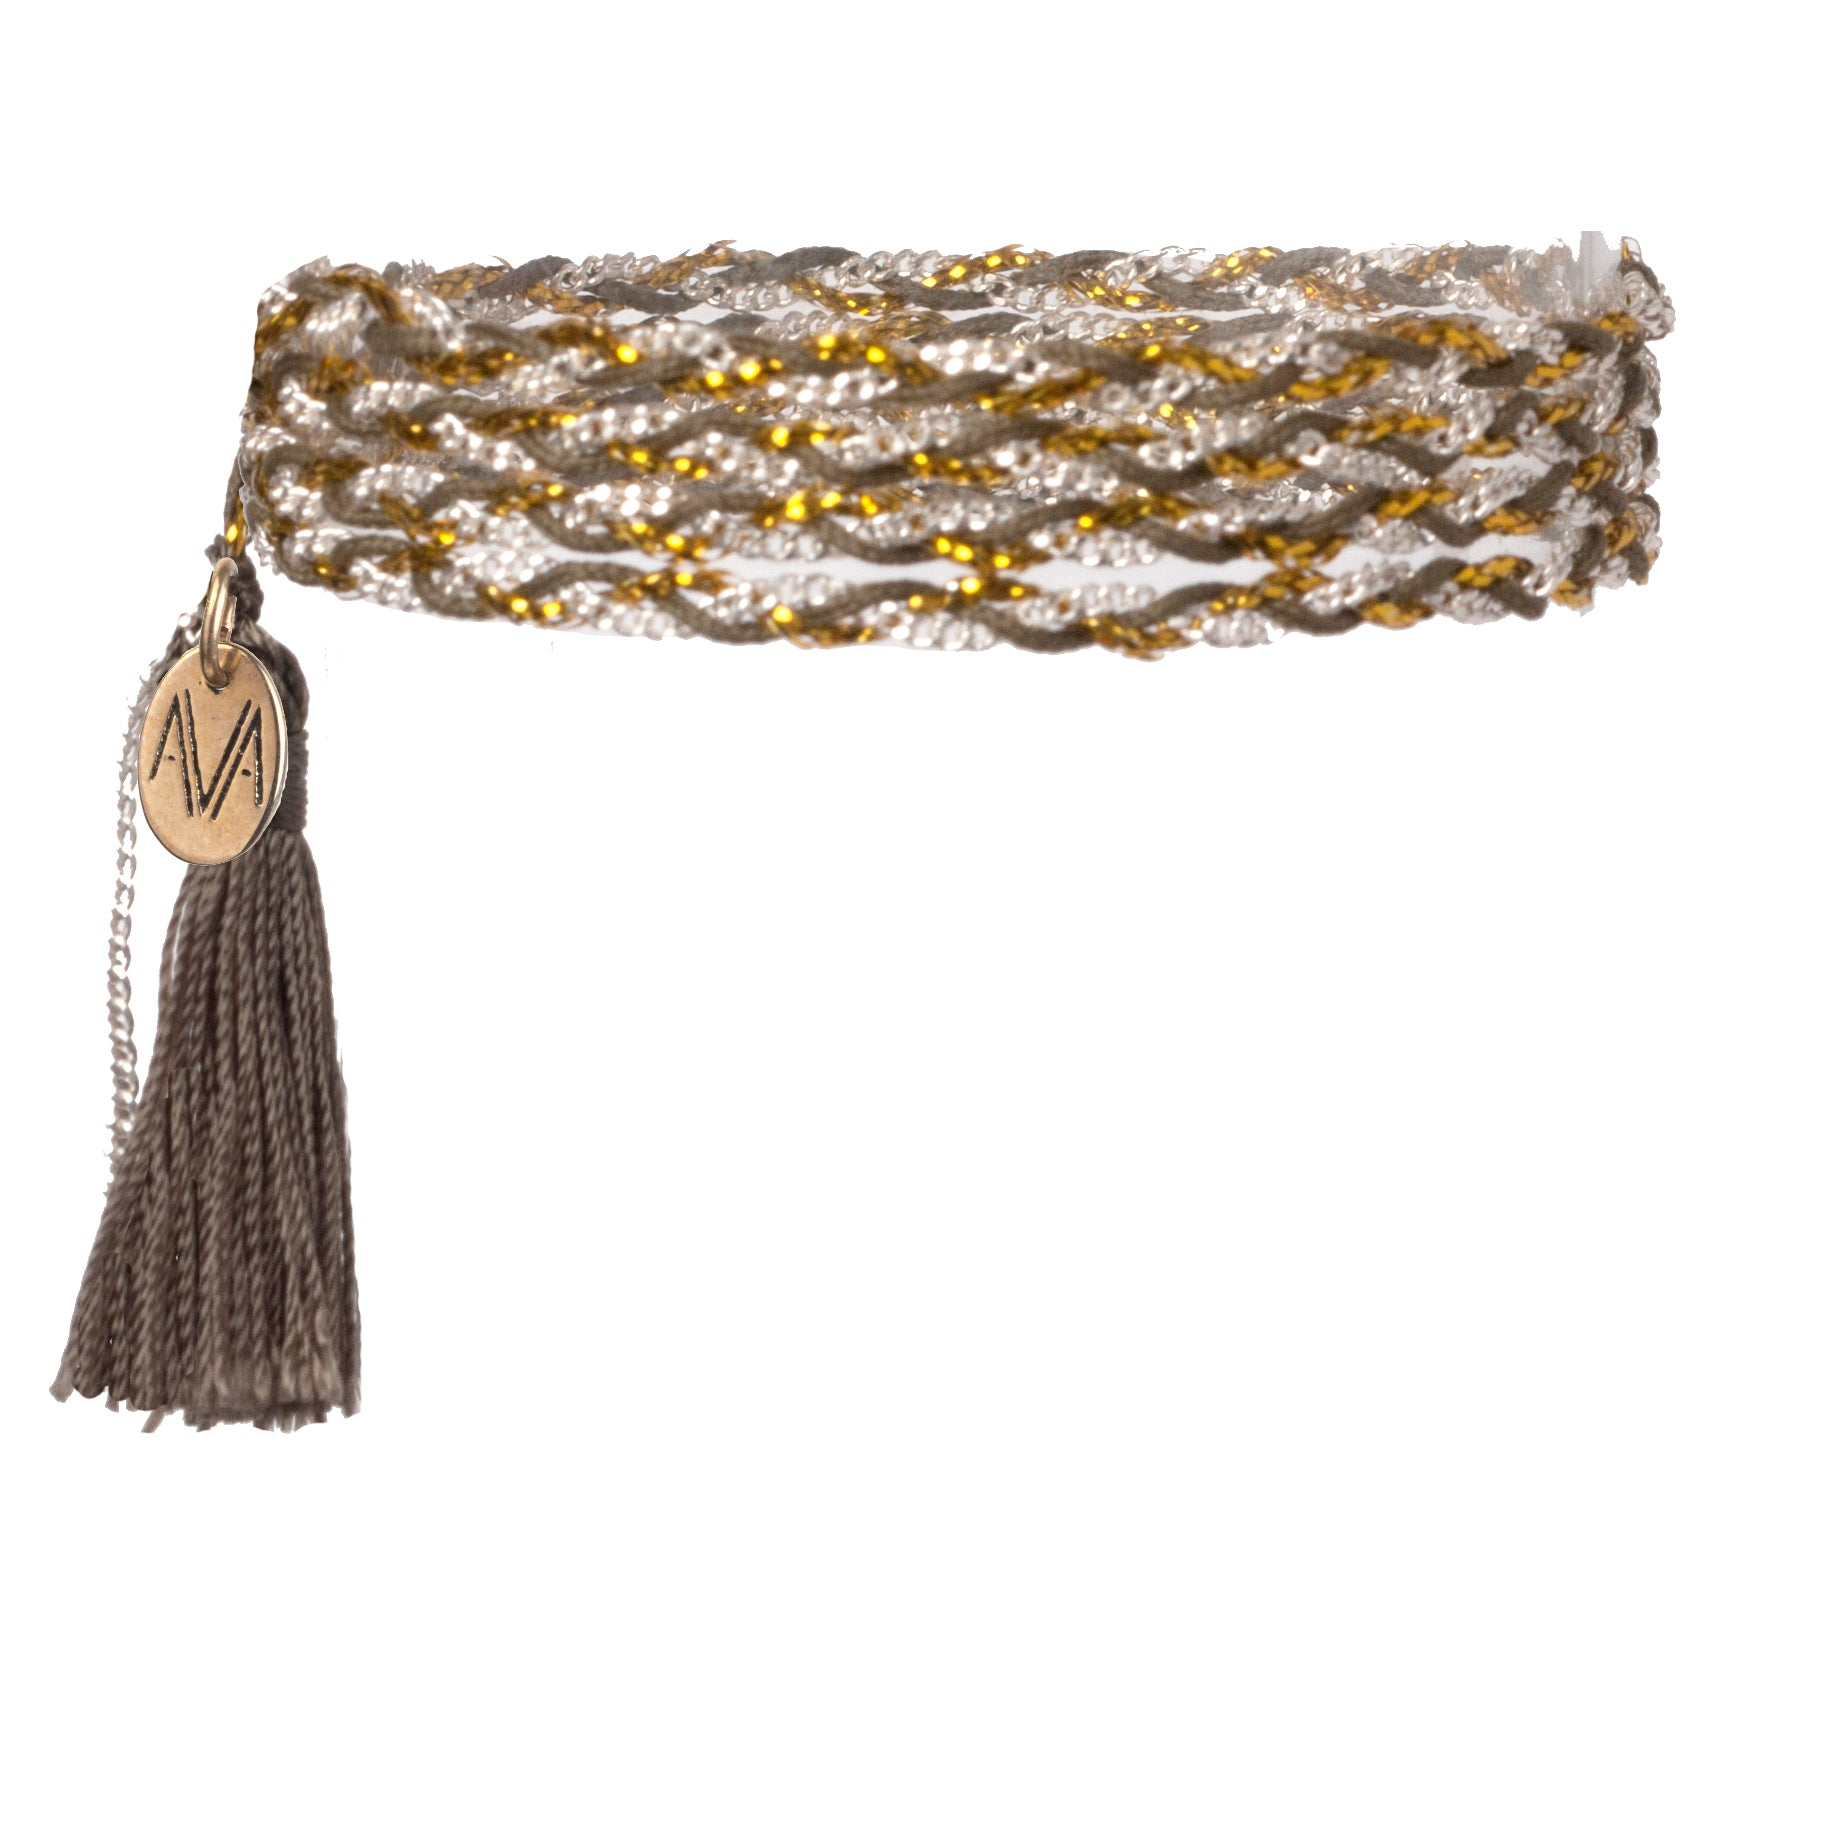 wrap bracelet made of Nylon, Lurex, nickel free chain, completed by a khaki tassel